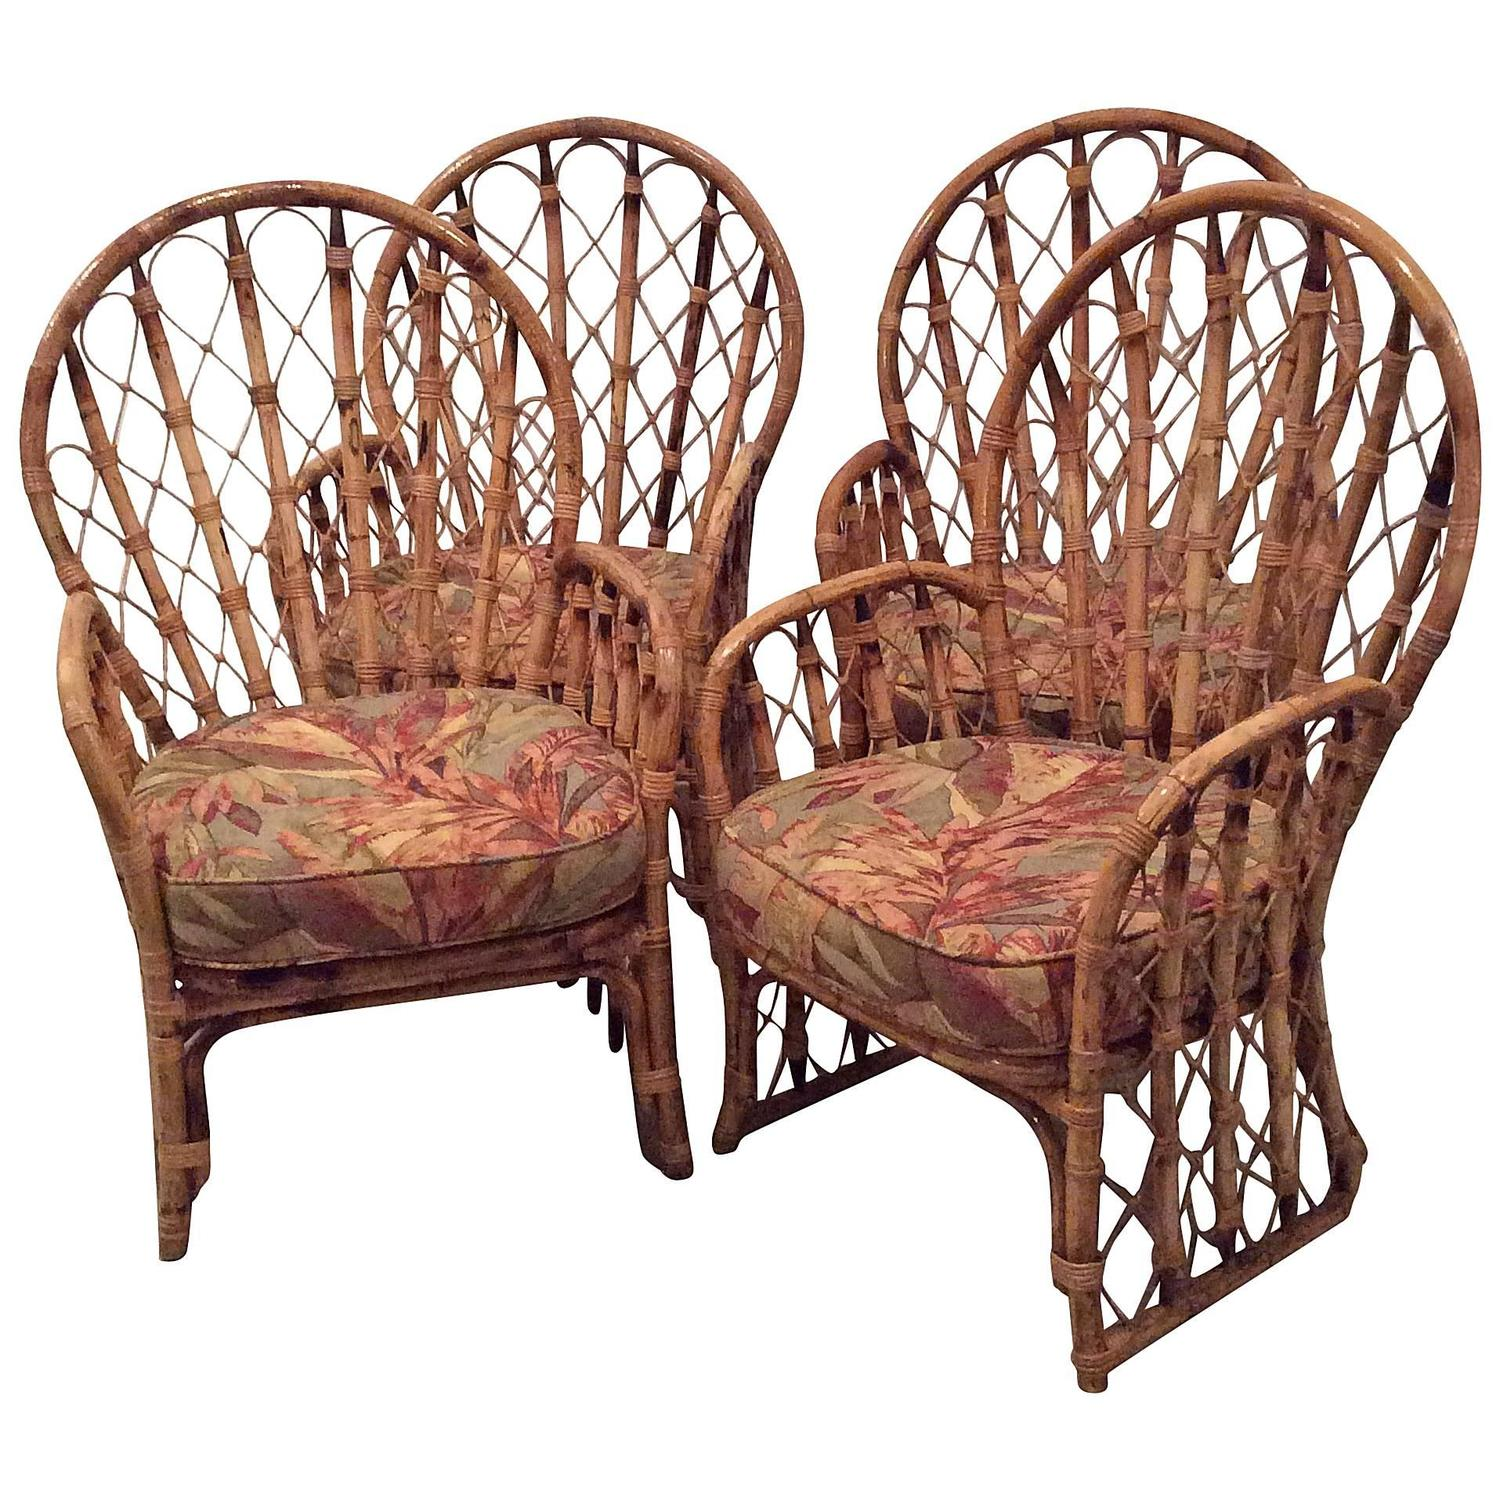 Rattan Wicker Arm Dining Chairs Vintage Set Of 4 Faux Bamboo Palm Beach  Patio For Sale At 1stdibs